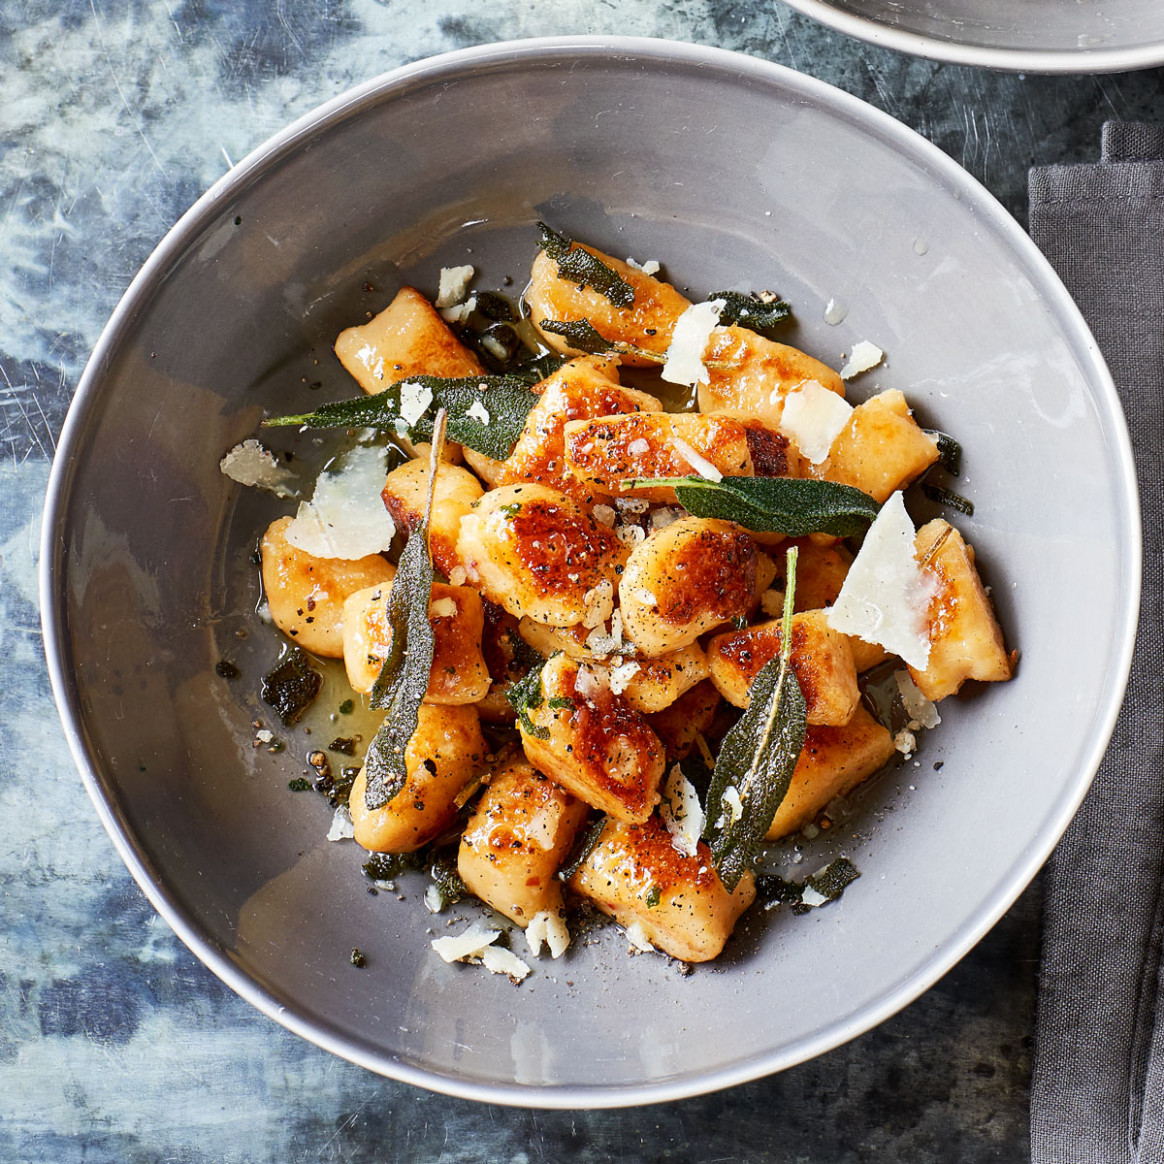 Swede gnocchi with crispy sage - recipes with gnocchi vegetarian